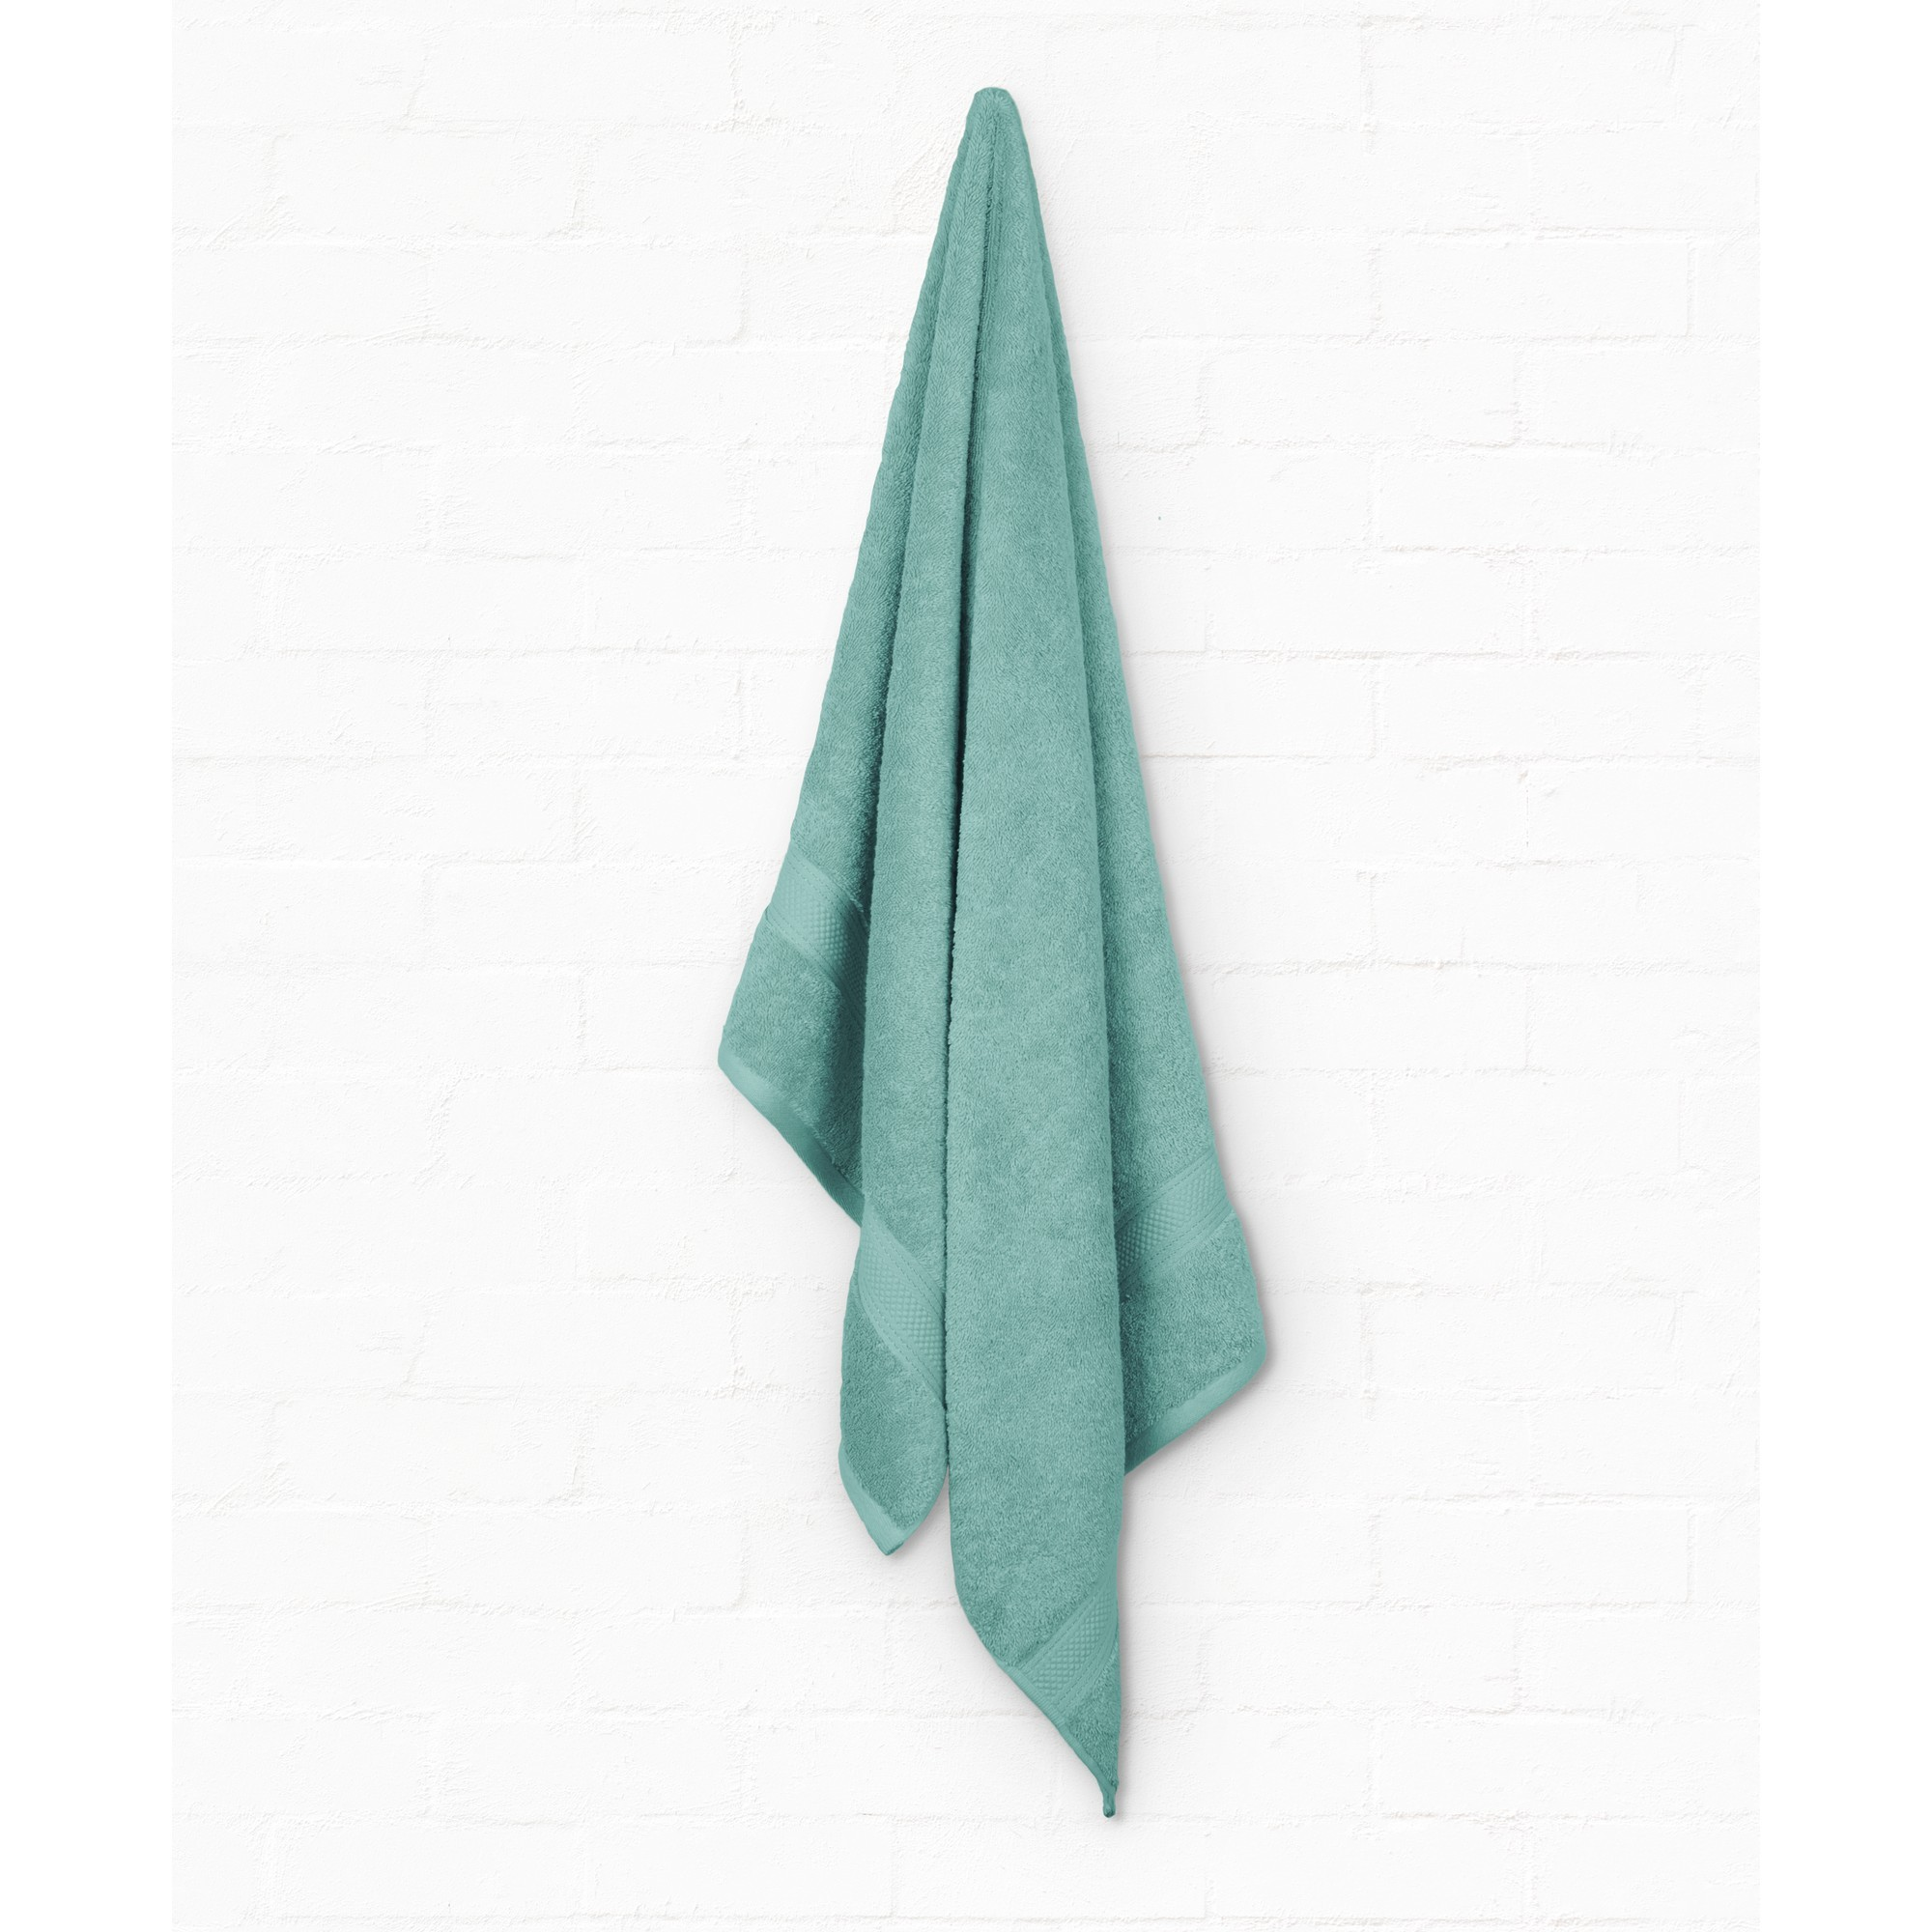 Algodon St Regis Cotton Bath Towel, Marine